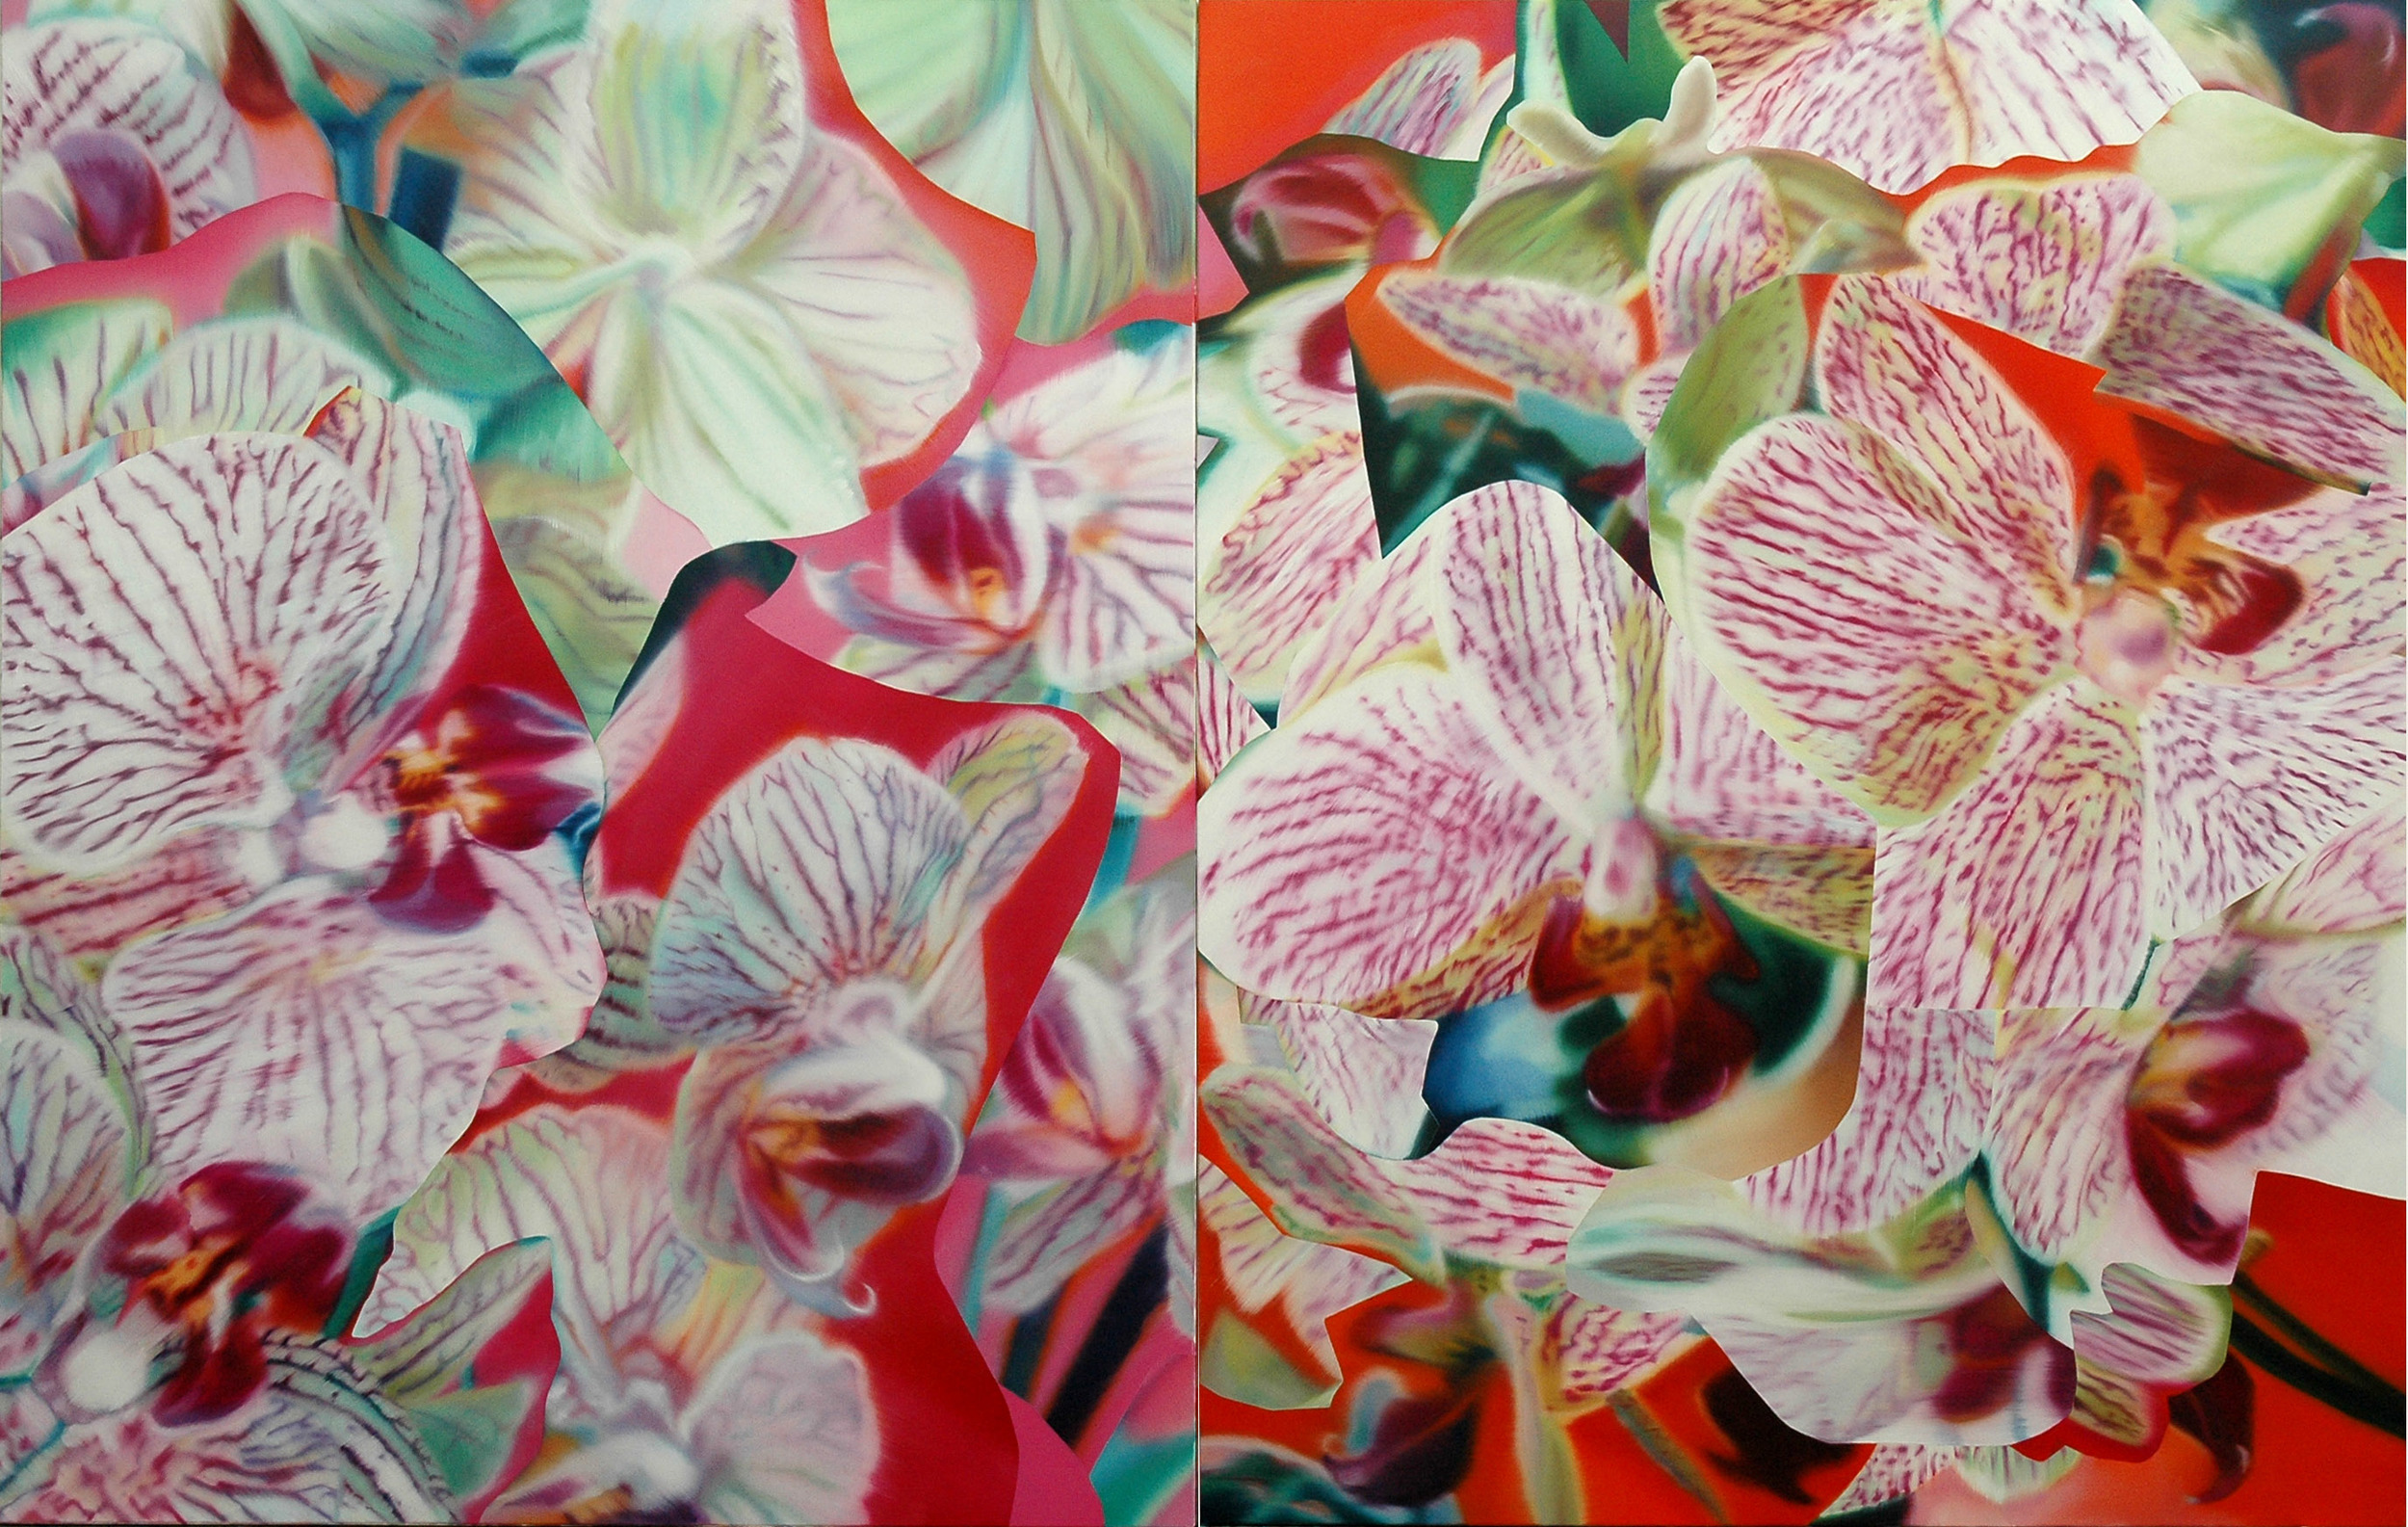 Untitled , 2005, oil on canvas, 146 x 228cm (diptych). Private collection, France